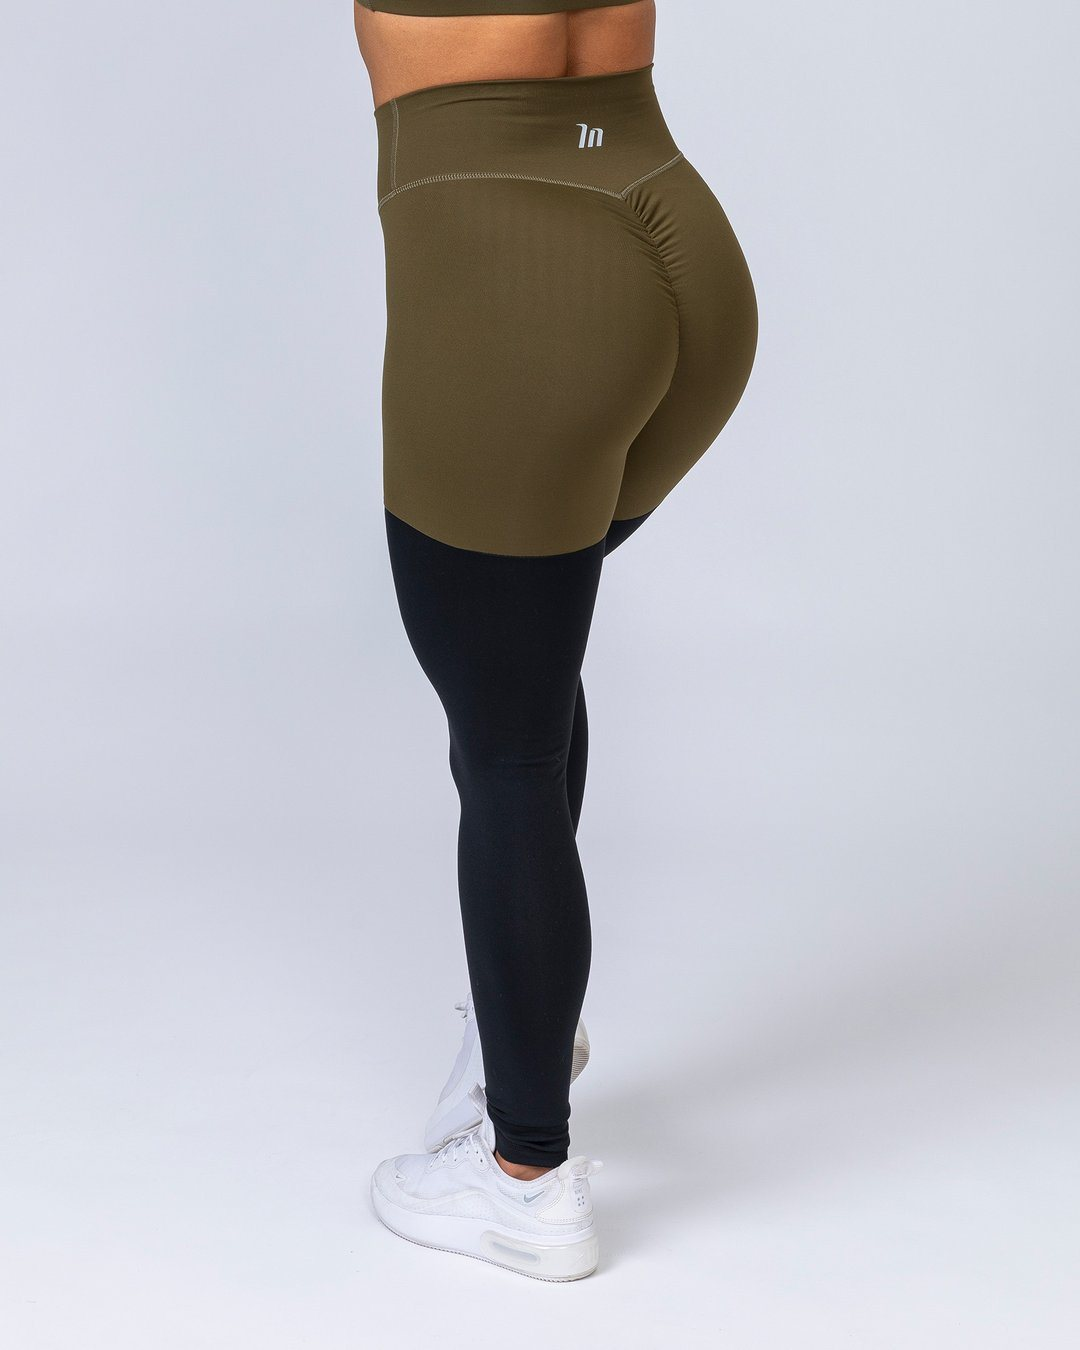 Muscle Nation High Waist Scrunch Two Tone Leggings - Black/Khaki